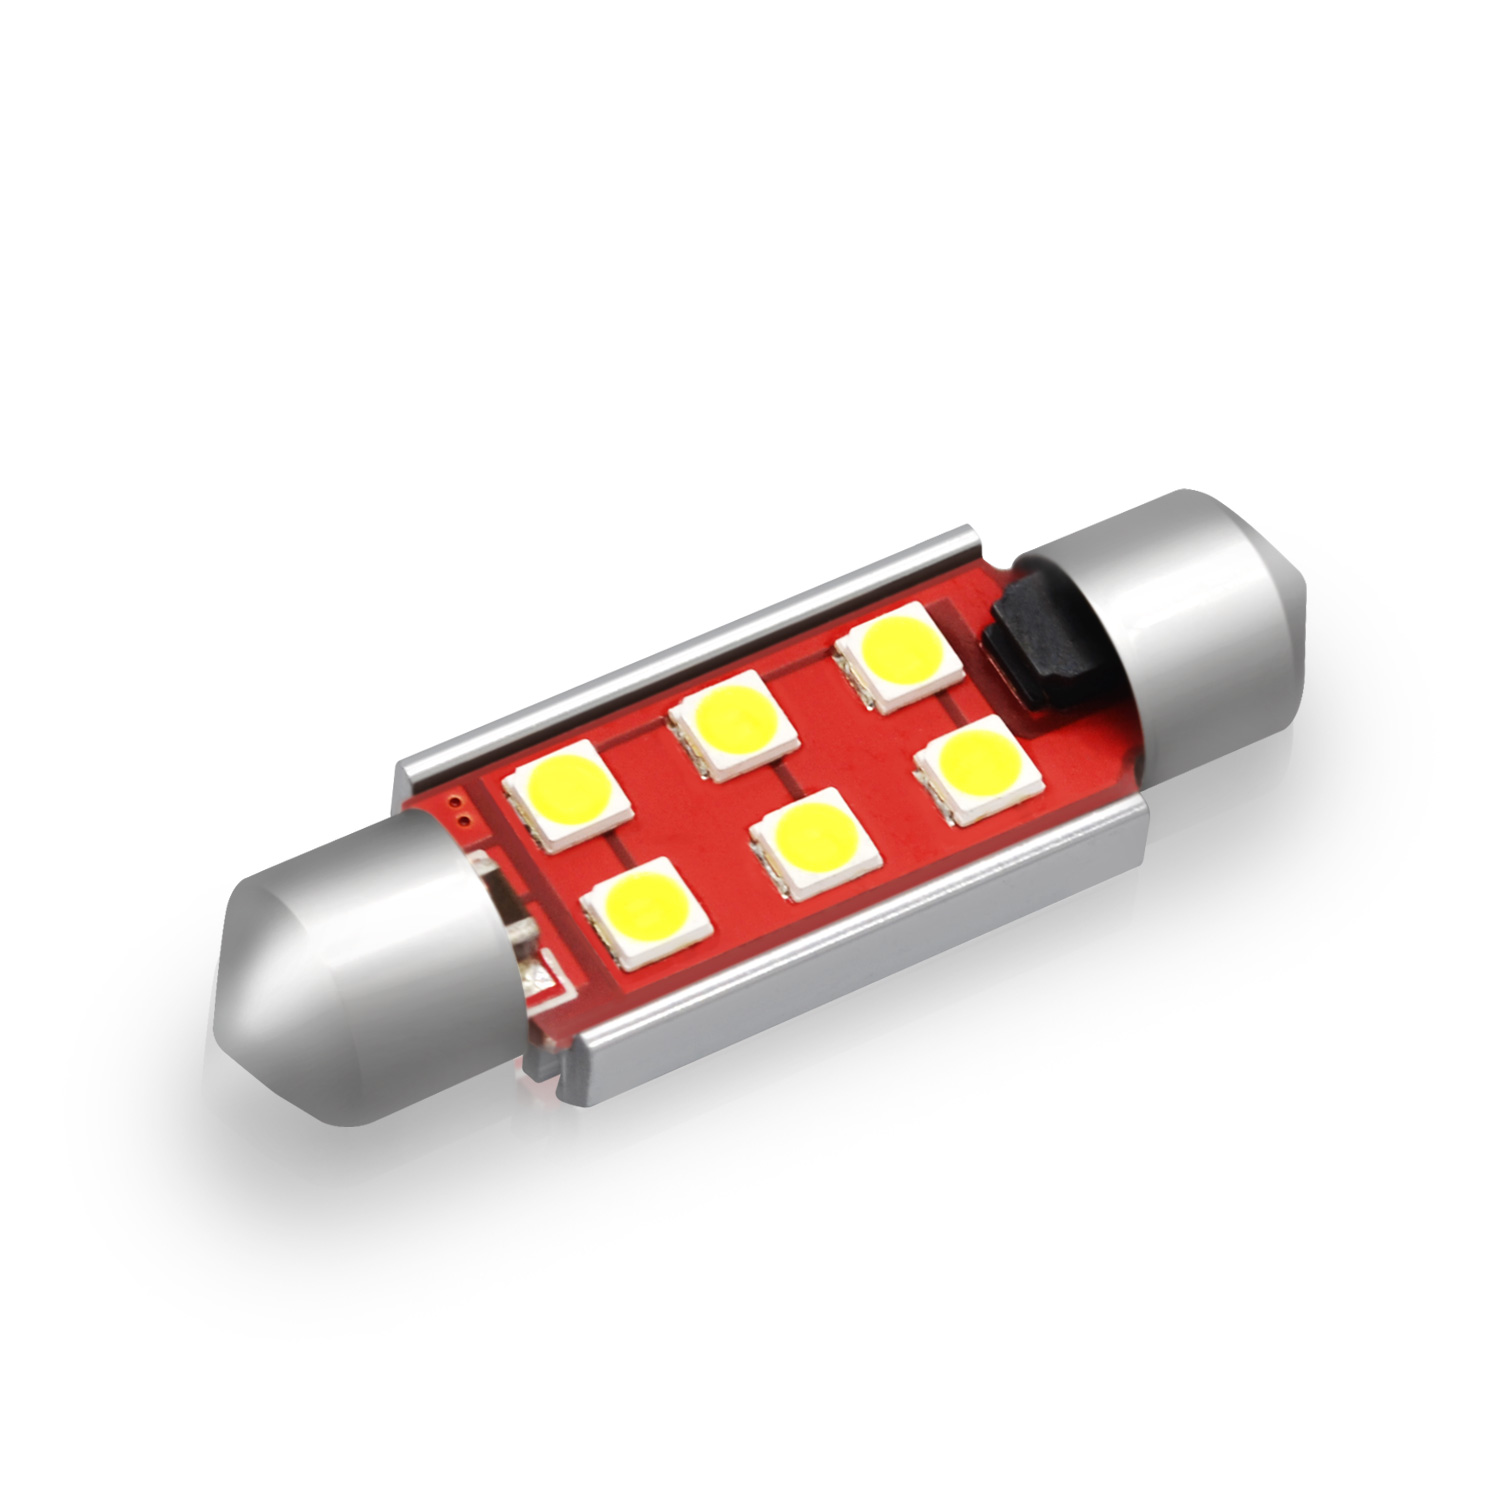 Automotive LED Interior Door Light Bulb for cars, trucks, motorcycles